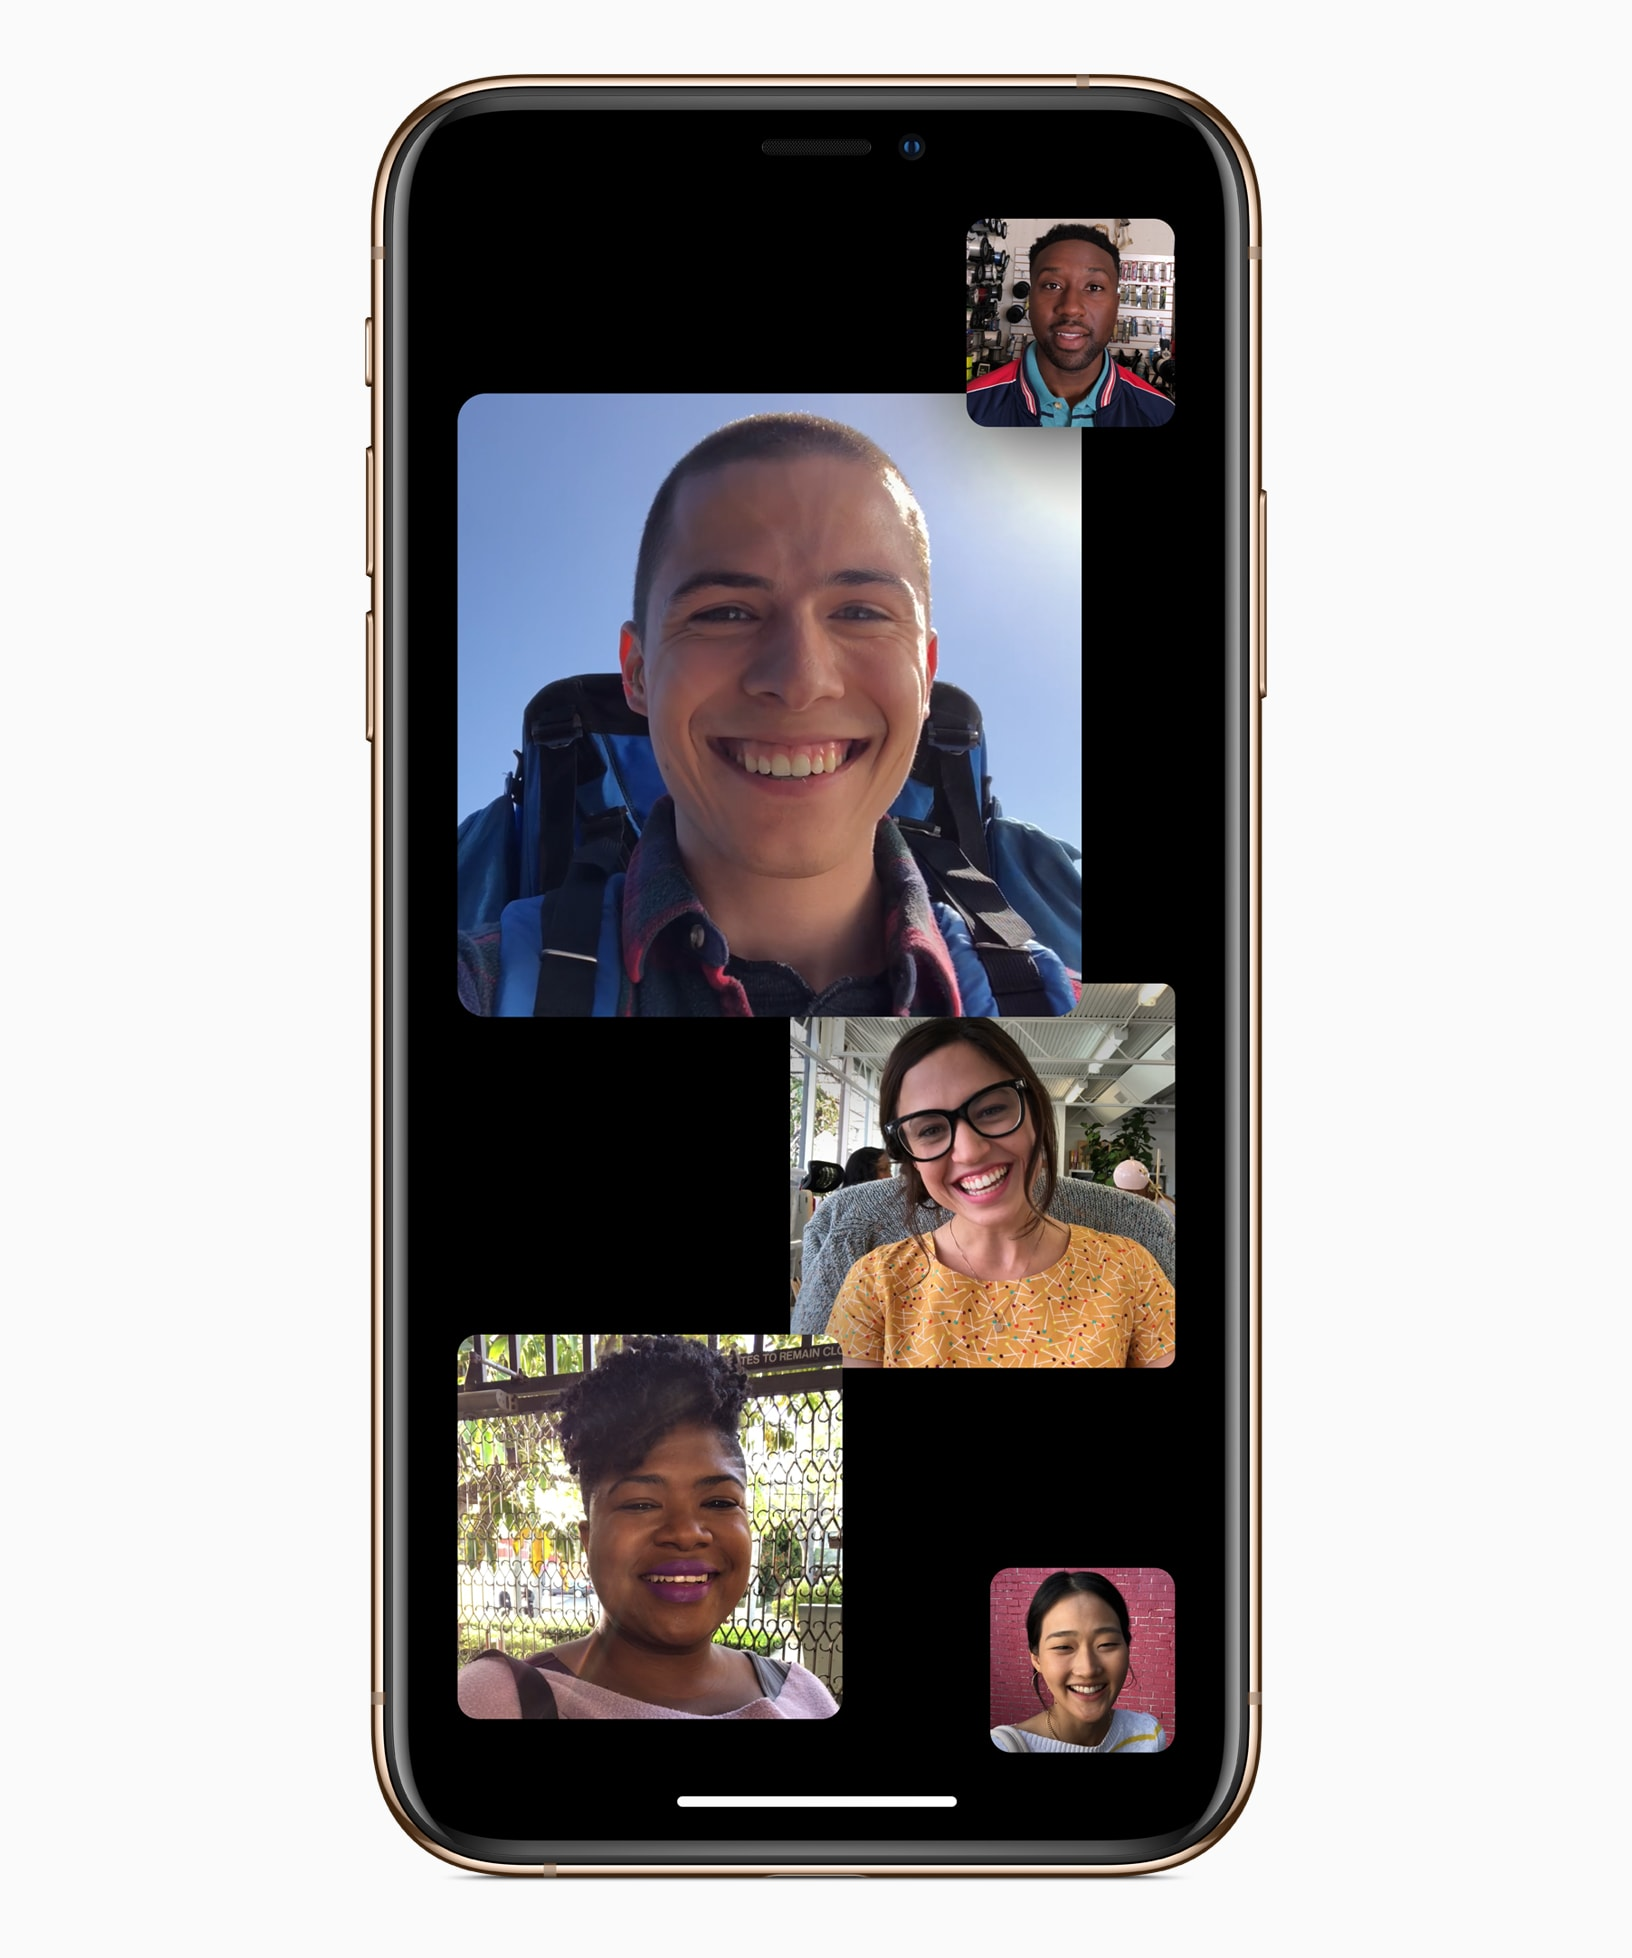 Group FaceTime is here at last in iOS 12.1.